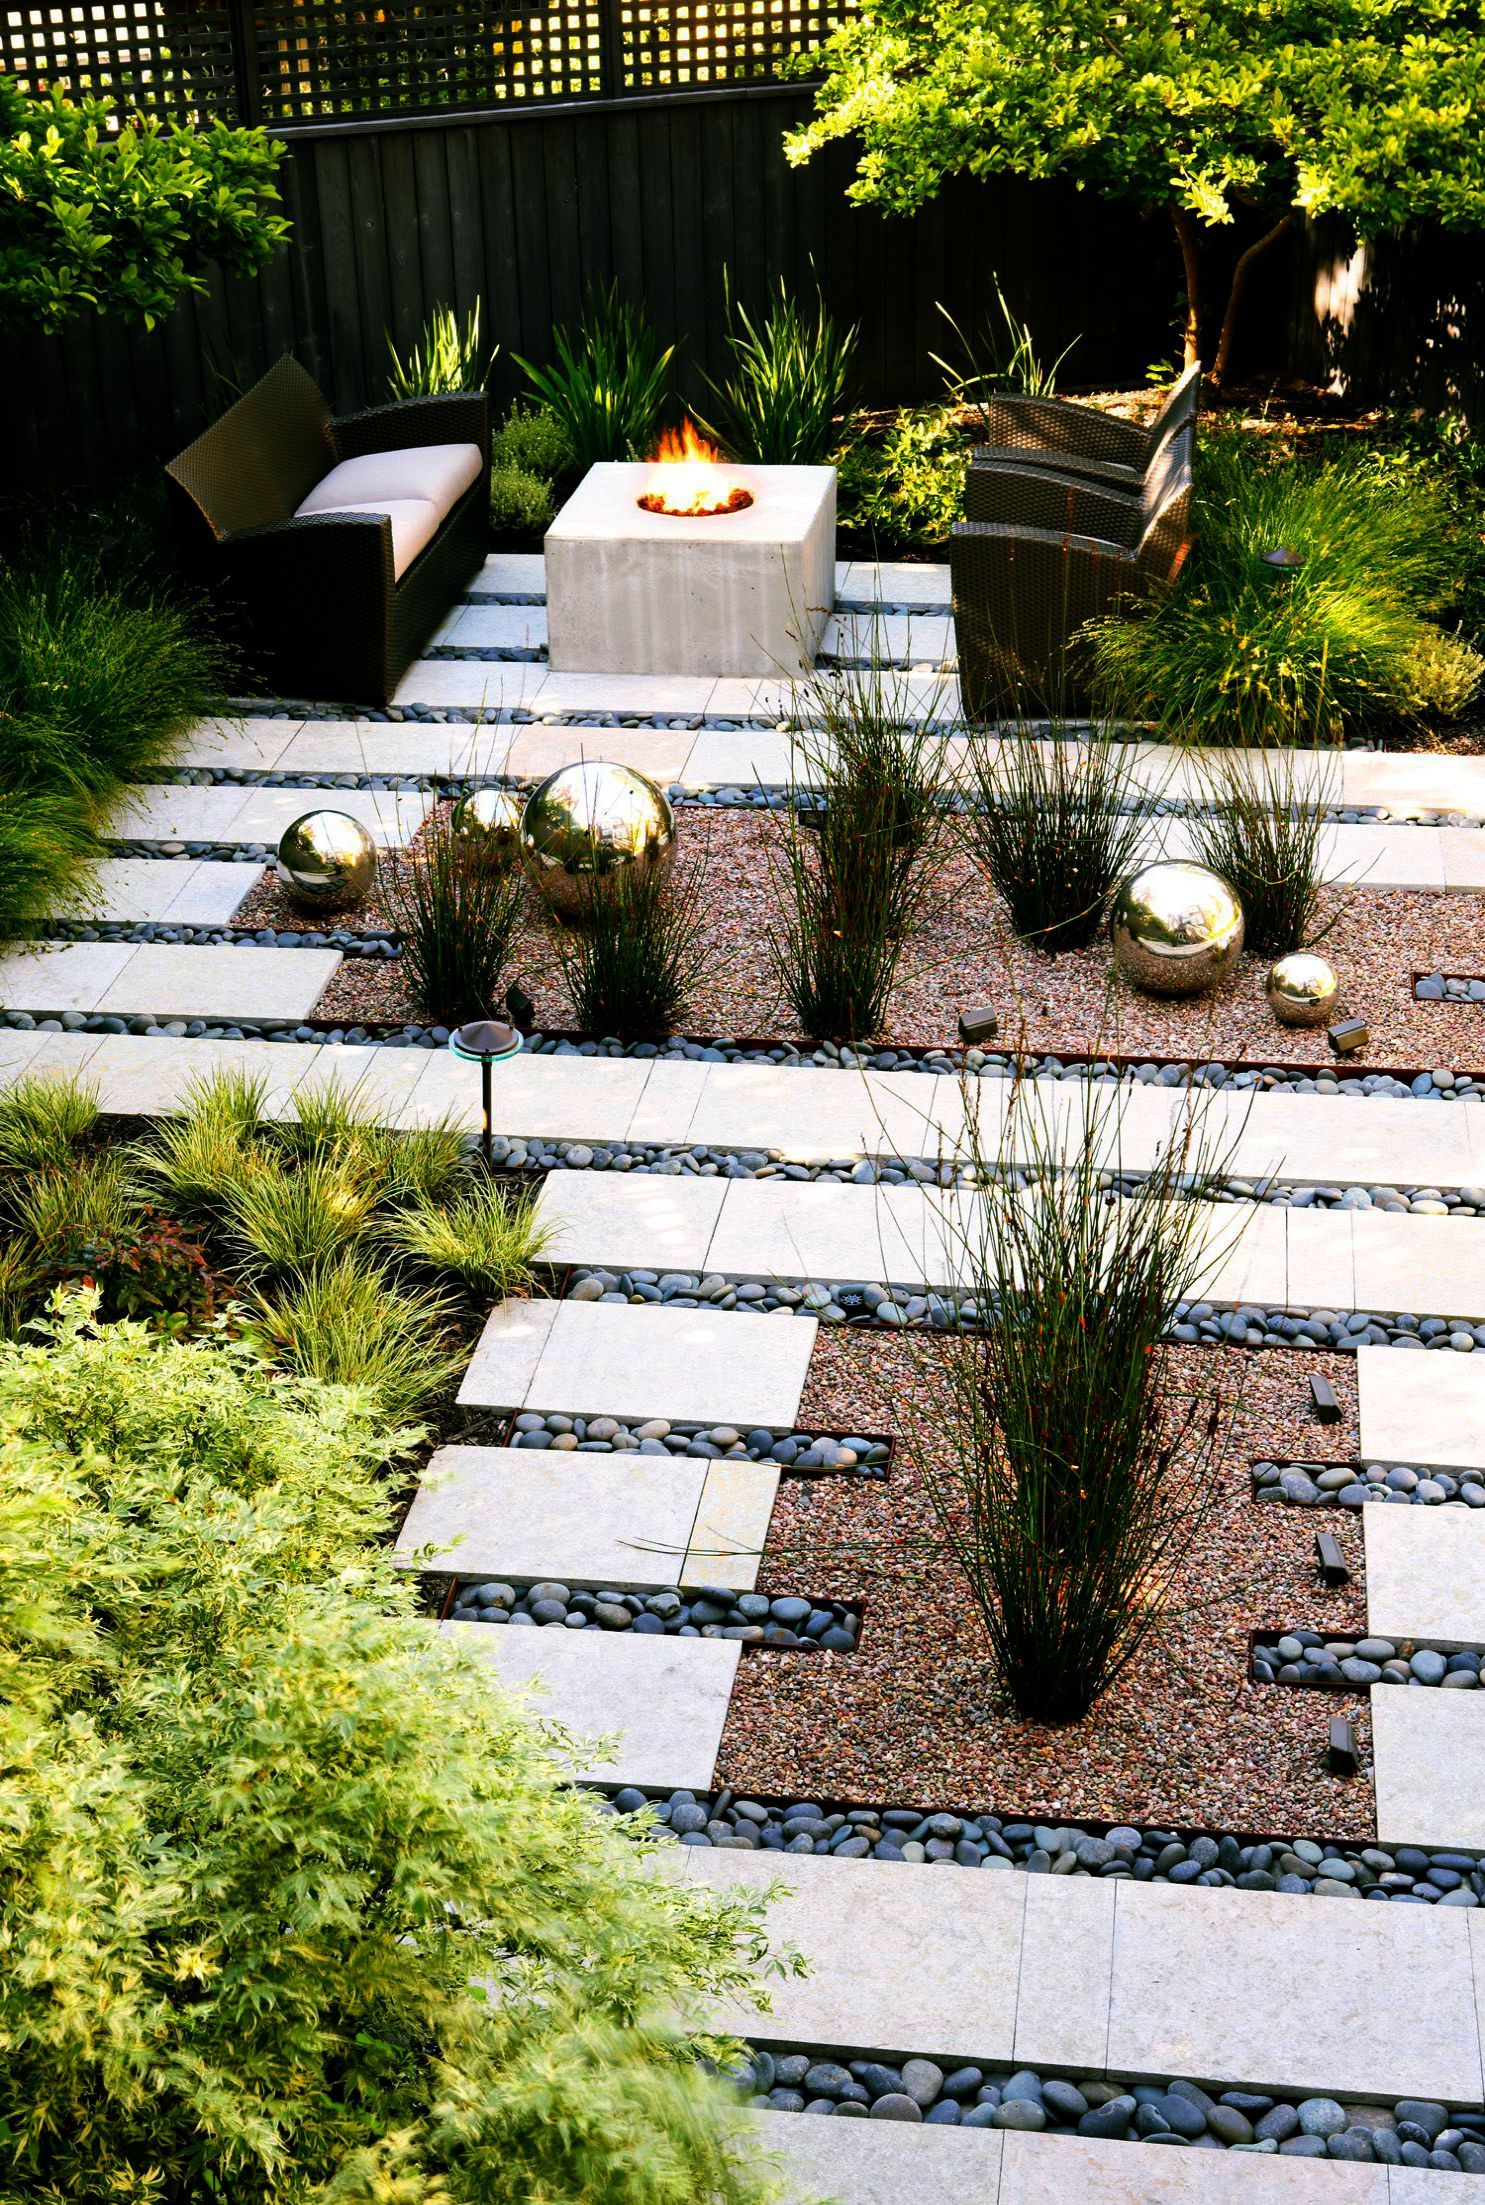 Landscape Gardening Services Near Me Where Landscape Gardening Pictures Lest Modern Small Backyard Design Backyard Landscaping Designs Modern Landscape Design